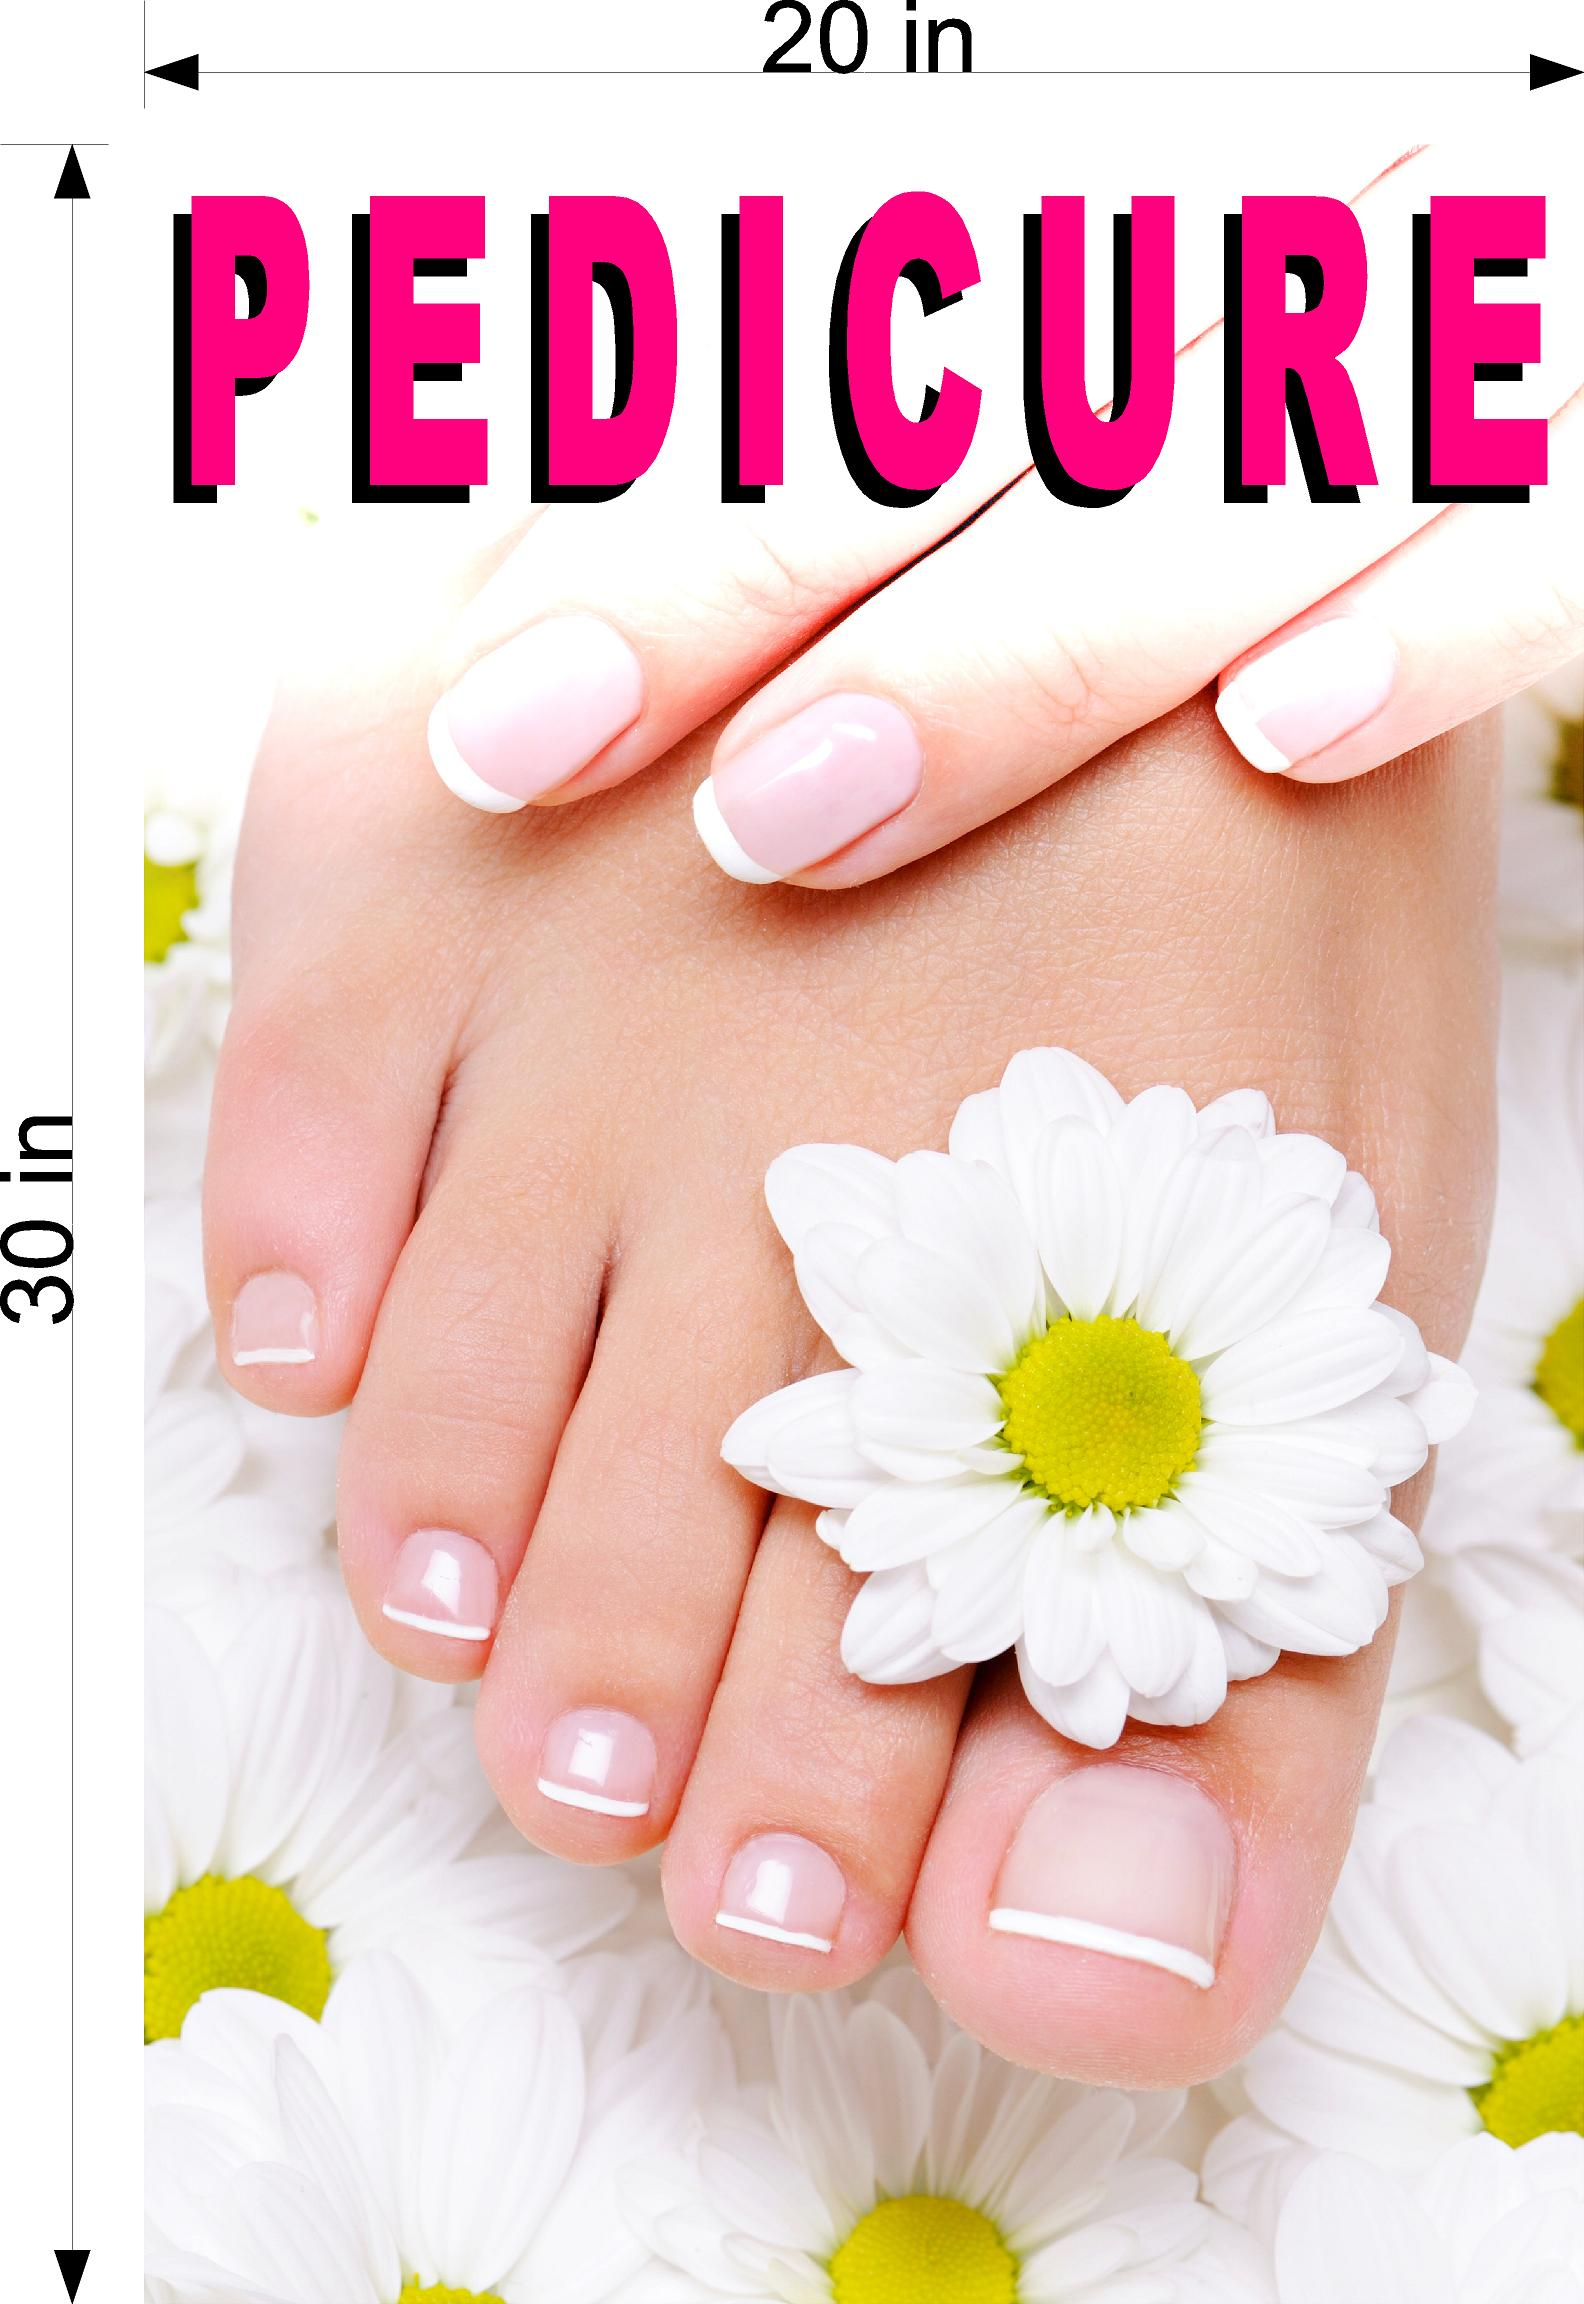 Pedicure 06 Wallpaper Poster Decal with Adhesive Backing Wall Sticker Decor Indoors Interior Sign Vertical